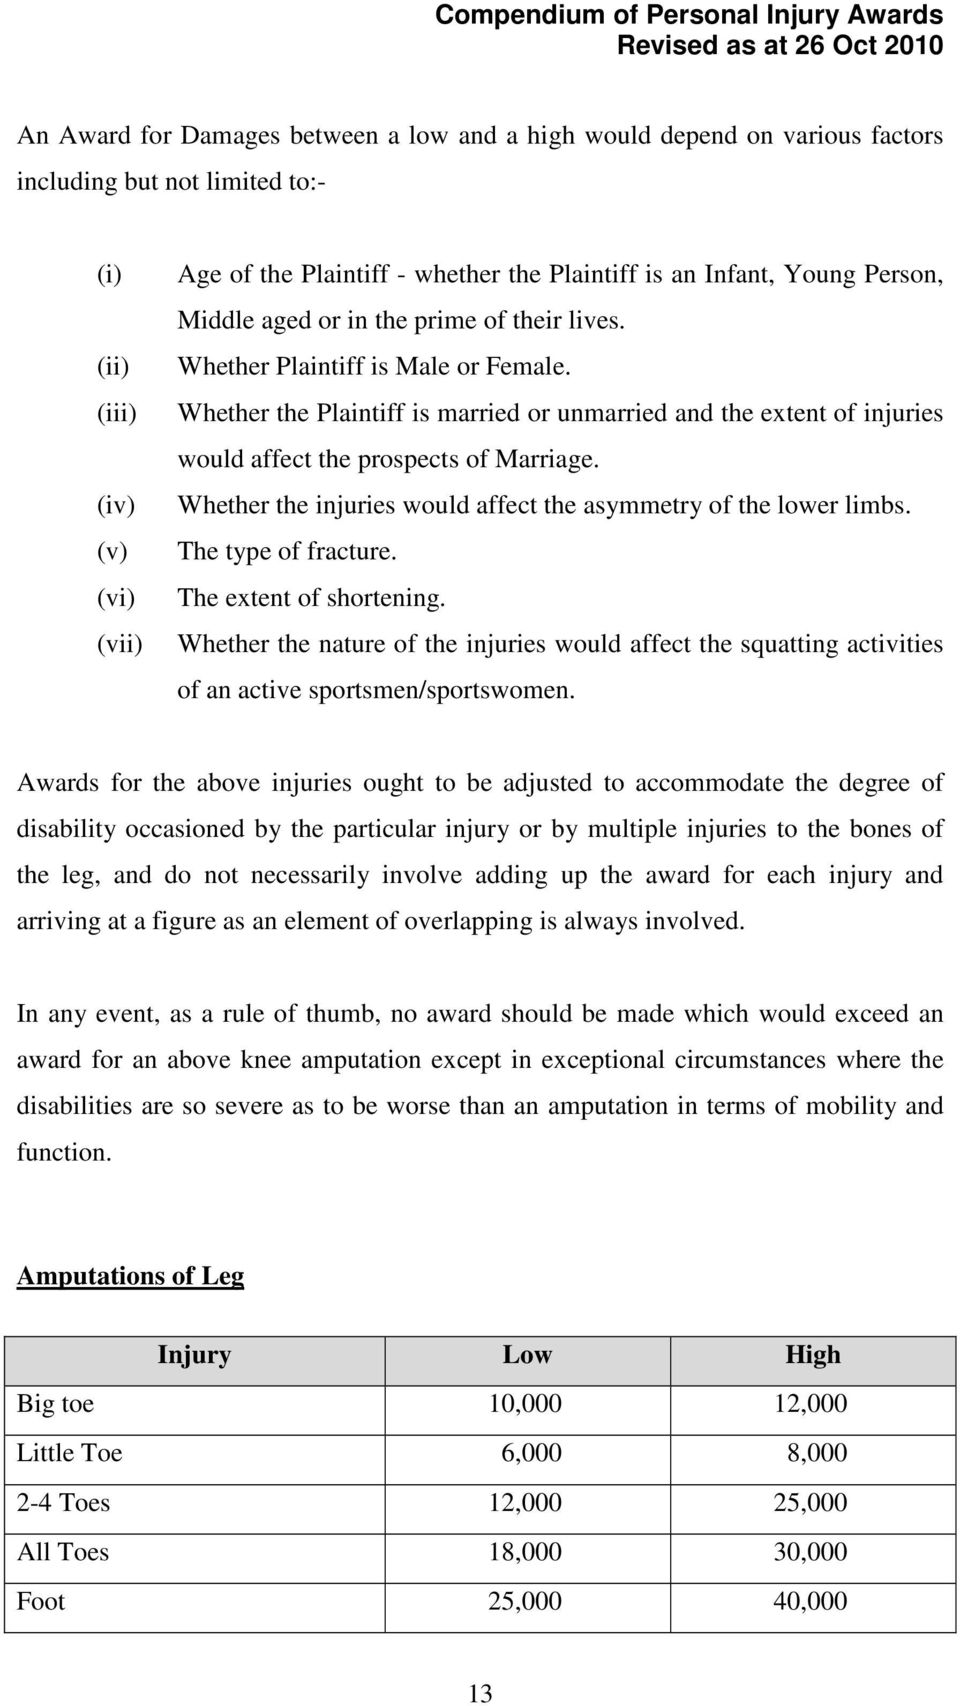 Awards for the above injuries ought to be adjusted to accommodate the degree of disability occasioned by the particular injury or by multiple injuries to the bones of the leg, and do not necessarily